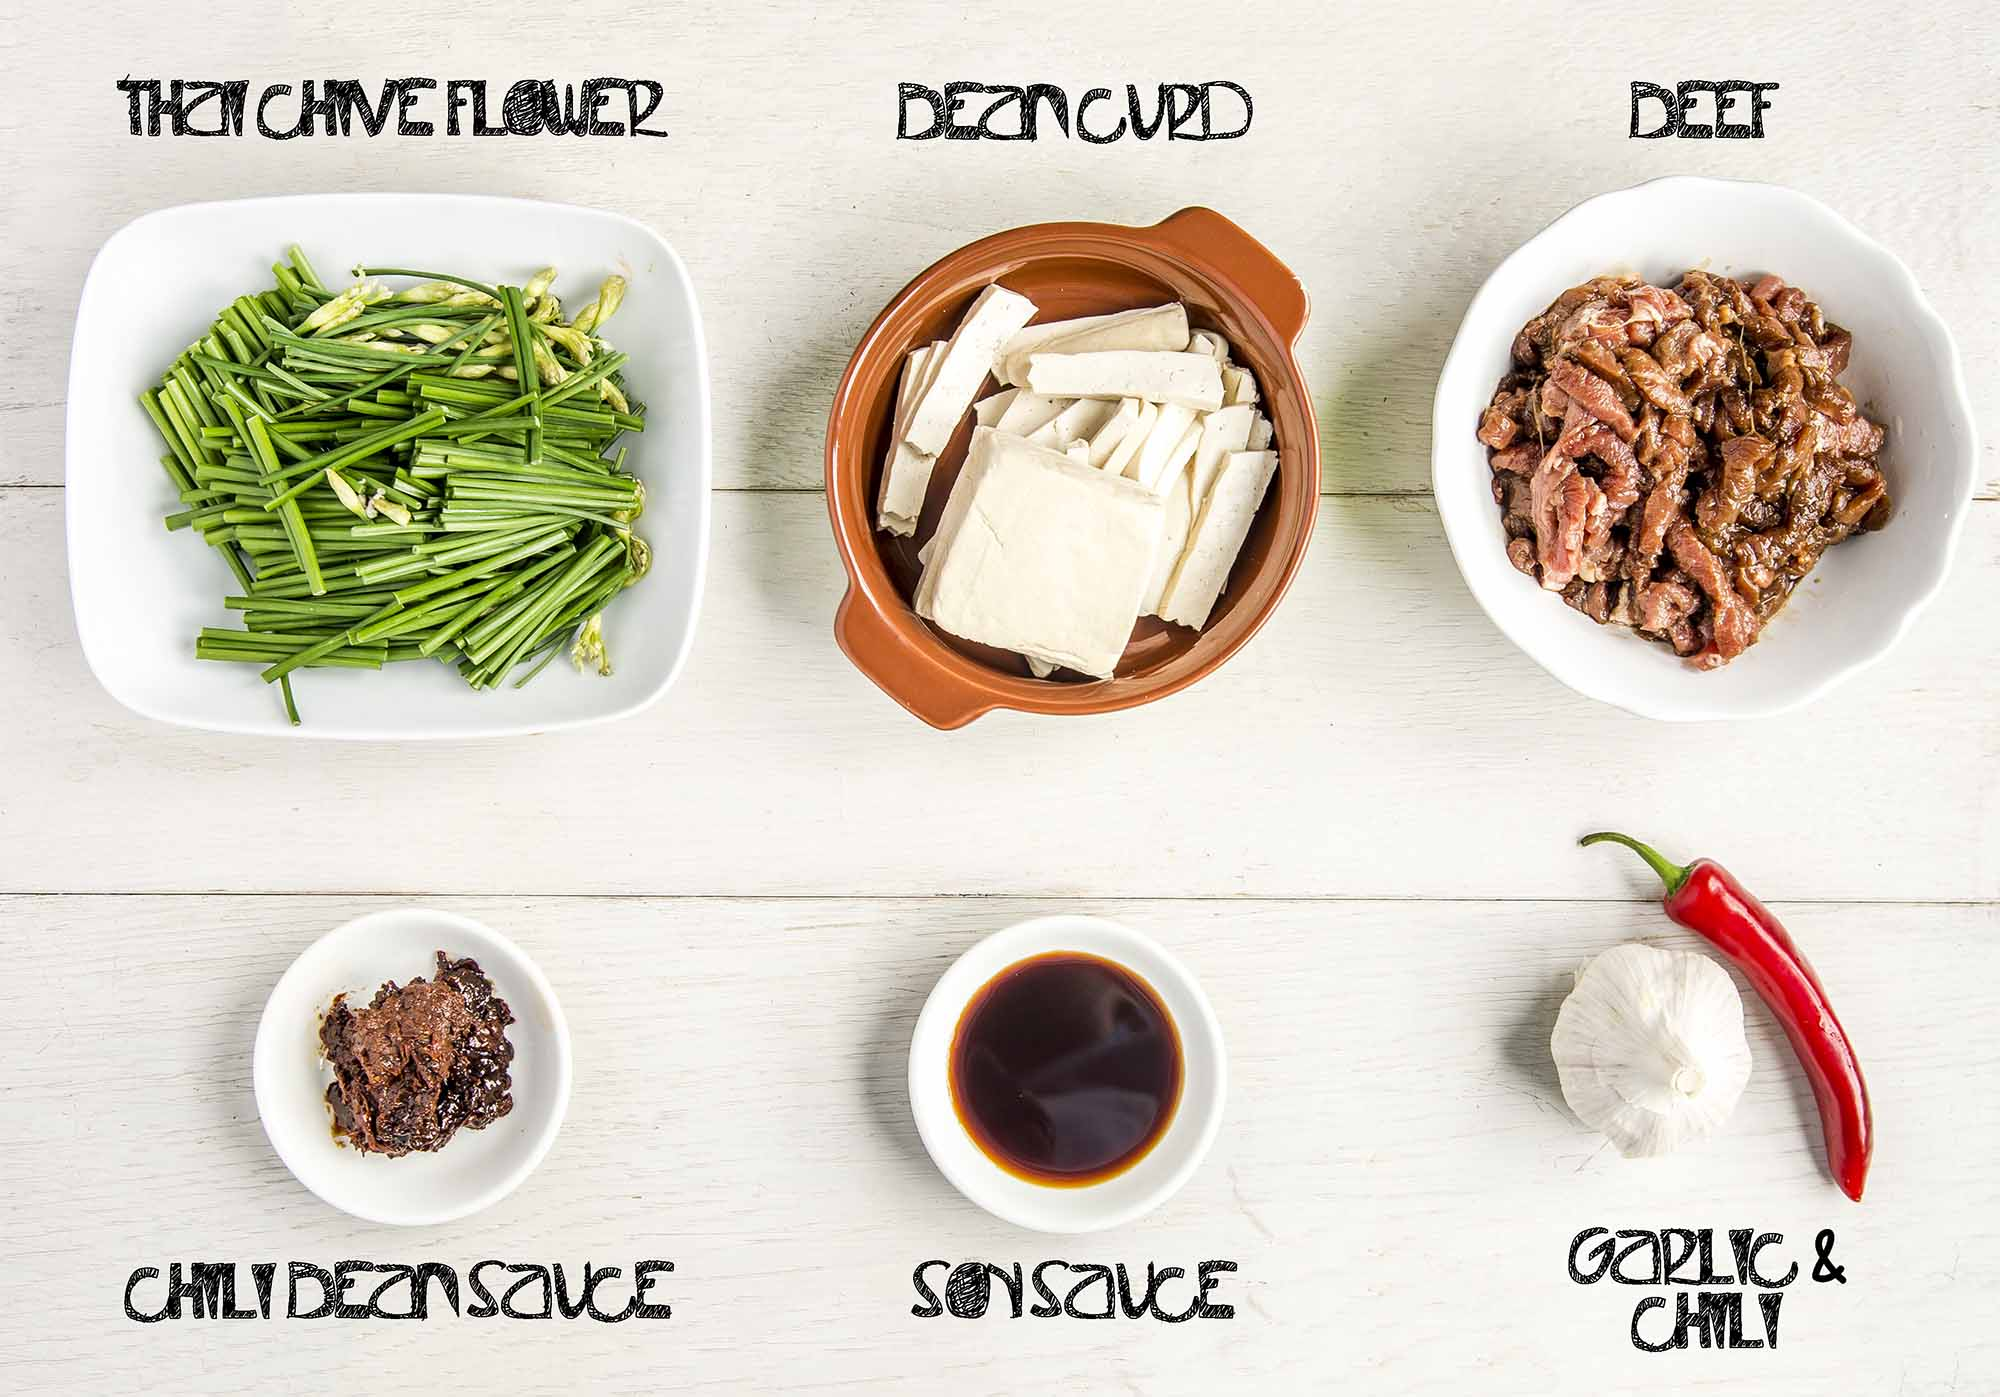 Stir Fried Beef with Thai Chive Flower and Bean Curd